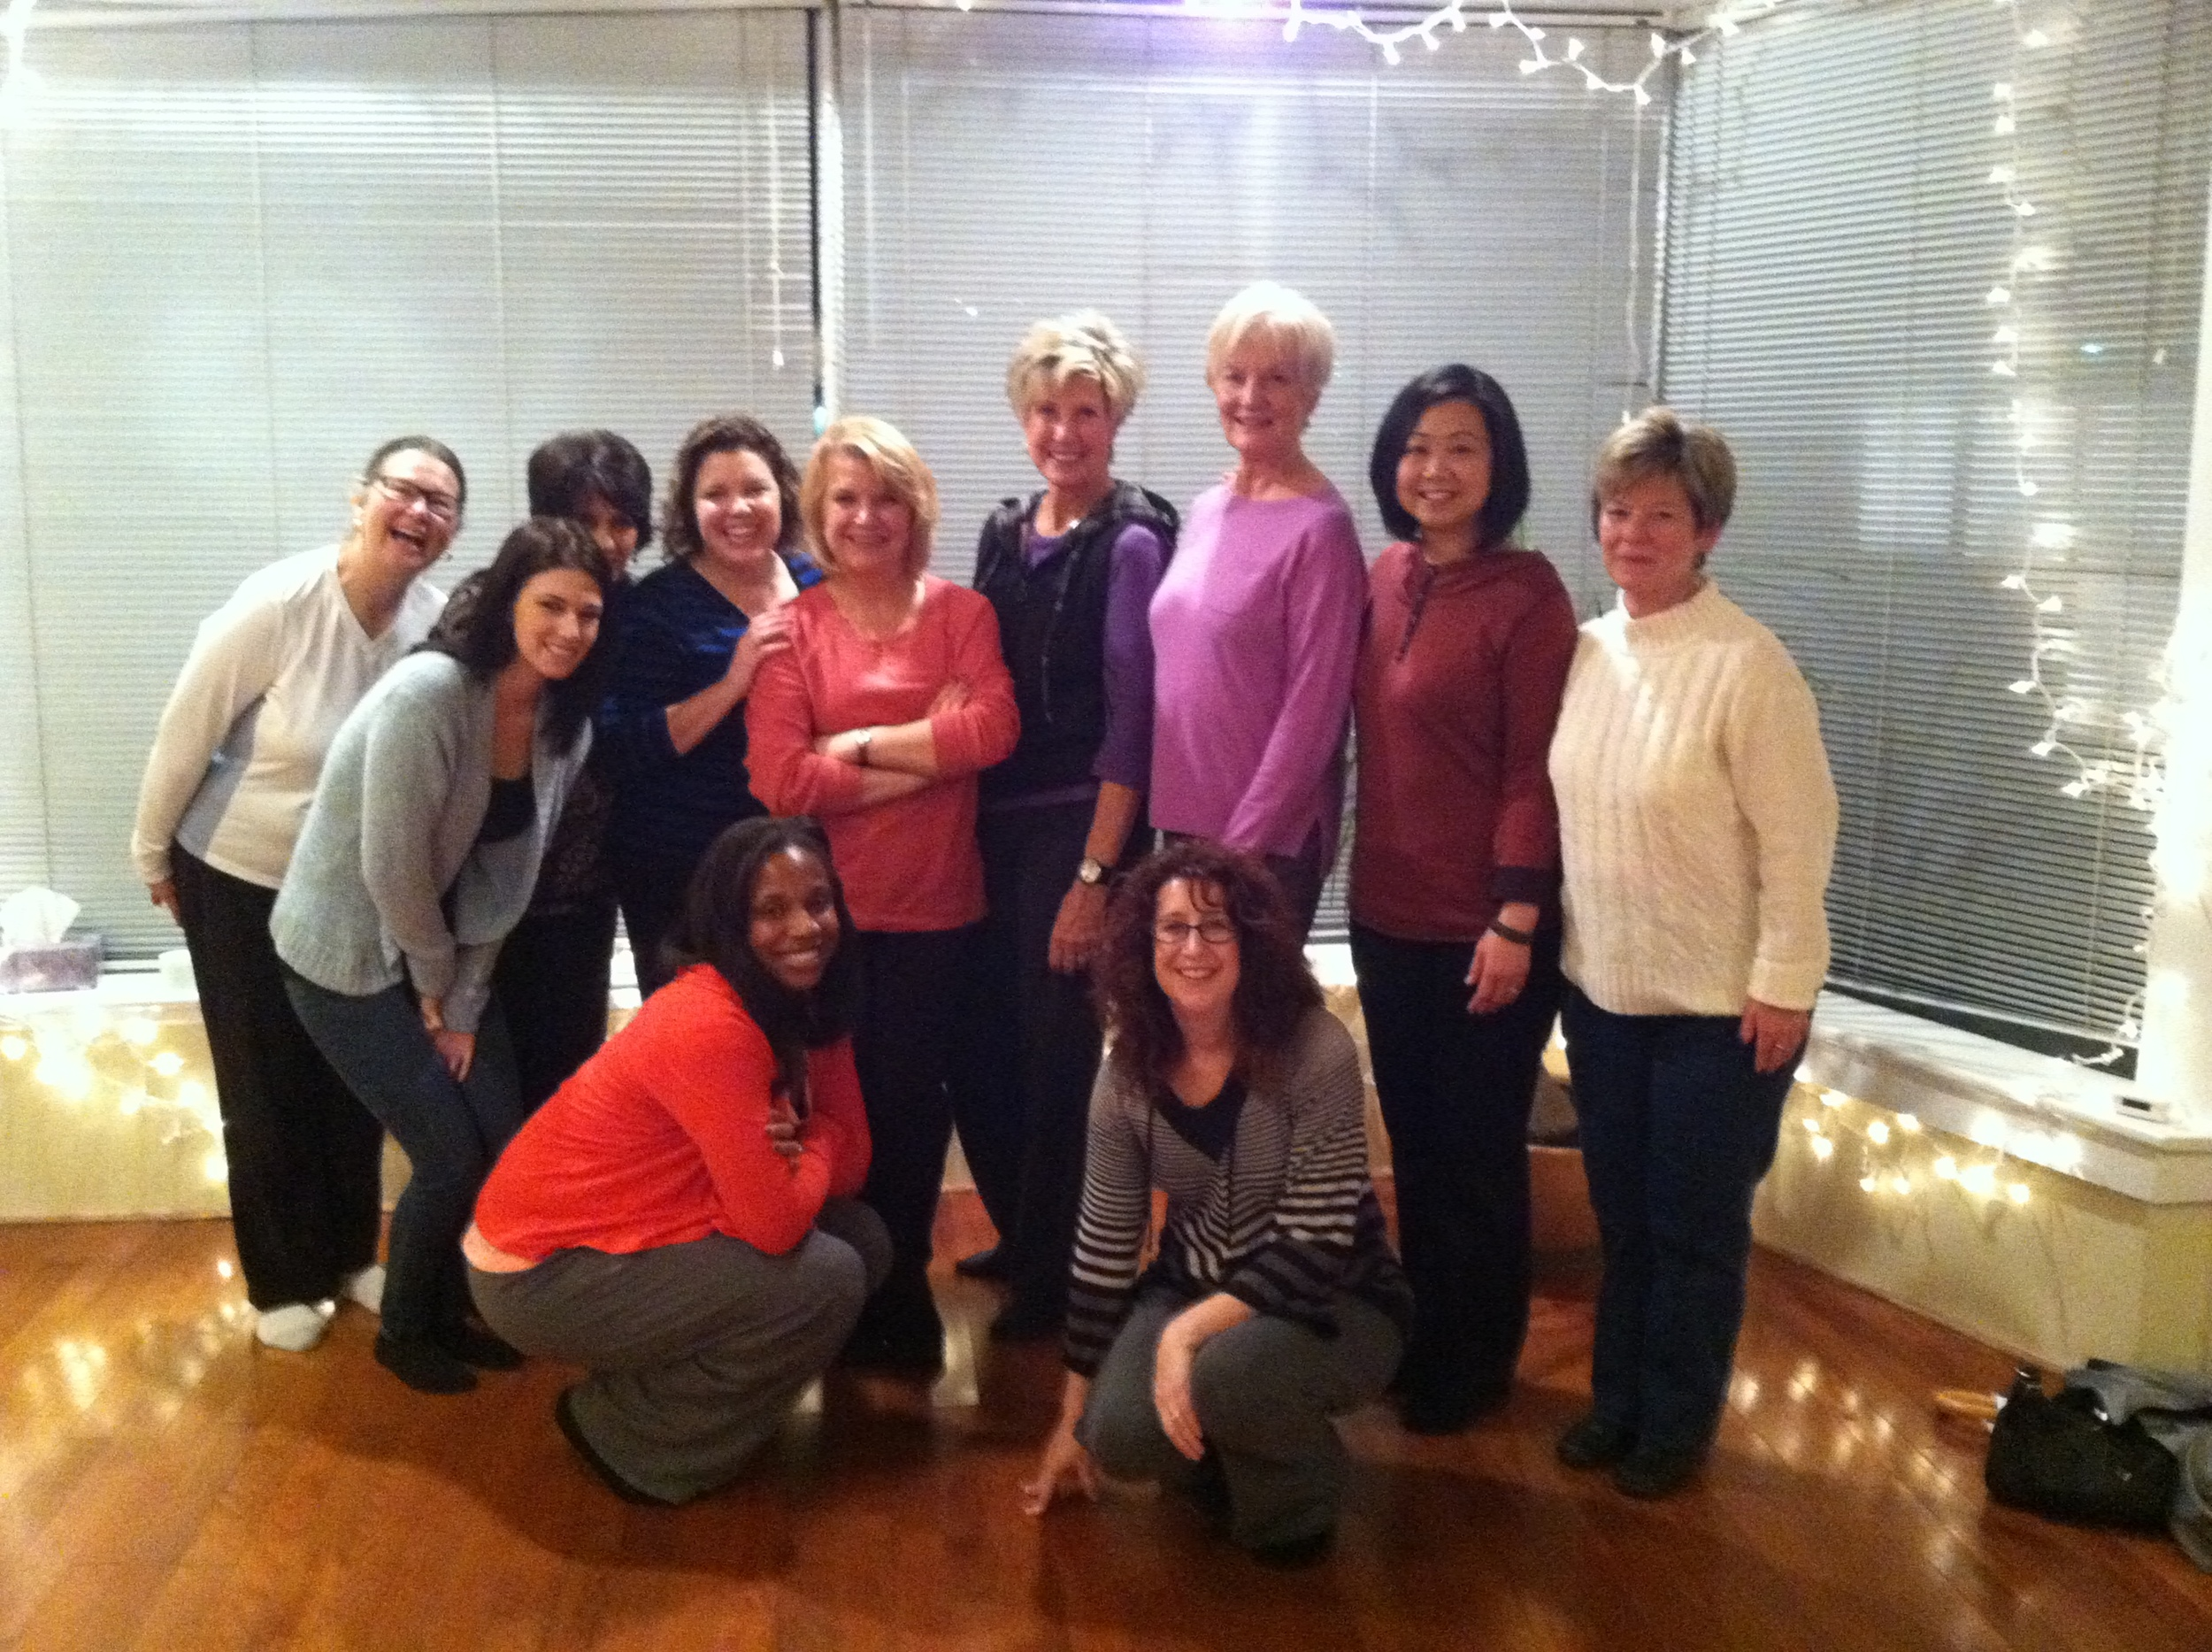 Lovely ladies from Vision and goal setting workshop